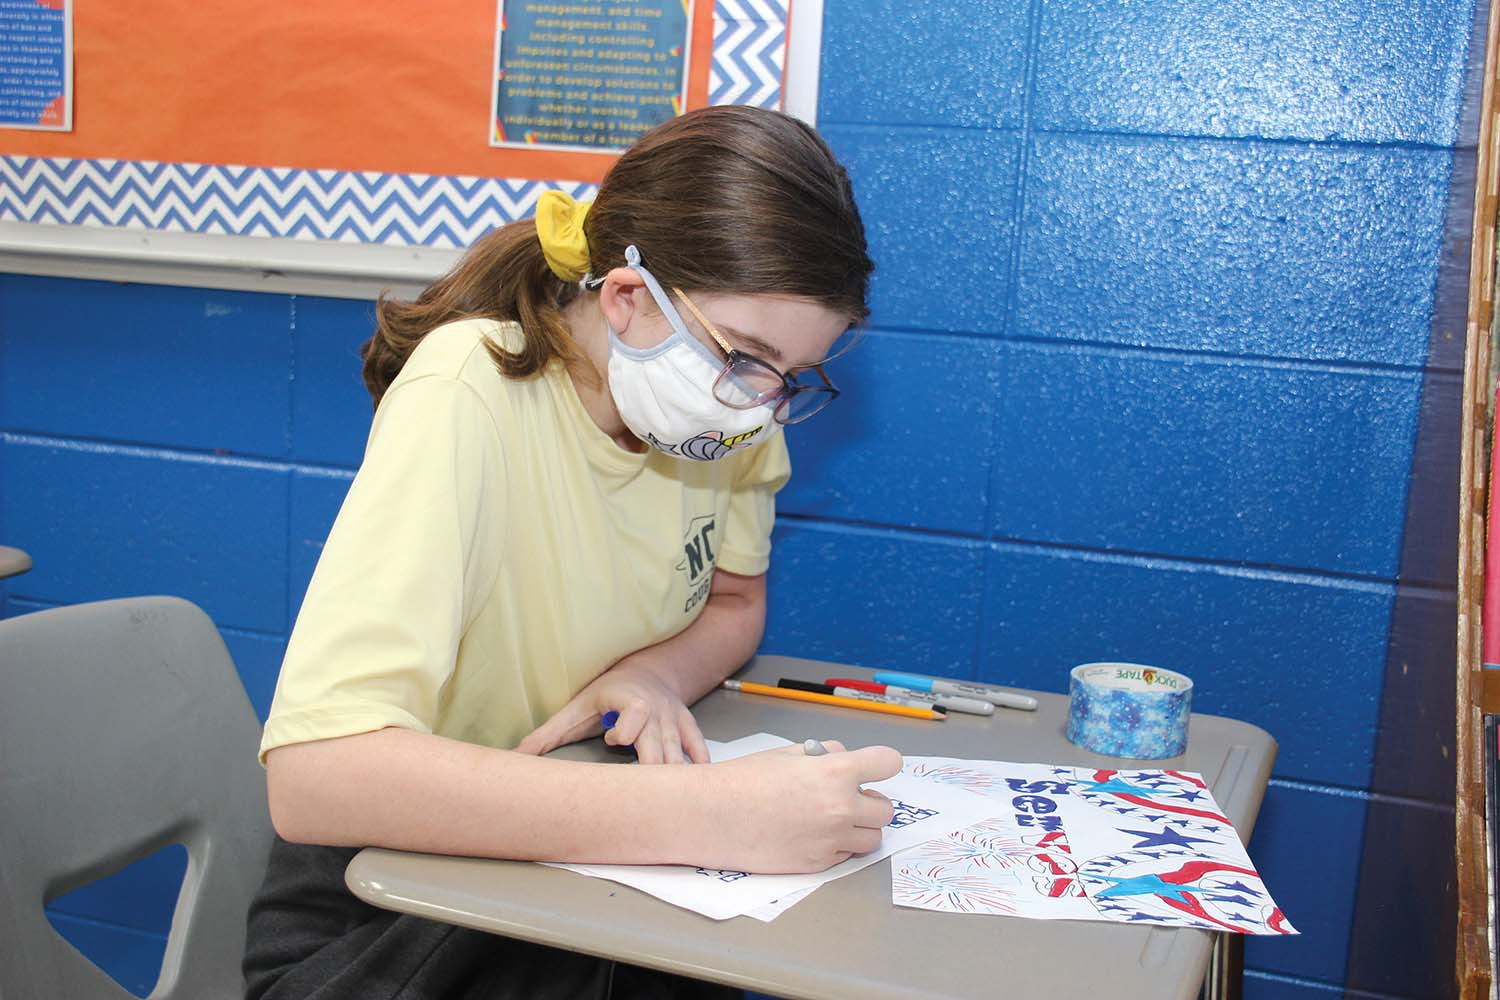 Chloe Cooper, a sixth grade student at Newton County Middle School, participates in the NCMS TAG Veterans Day initiative. Sixth grade TAG students developed resources and prepared a social media video and expressed appreciation to all veterans.